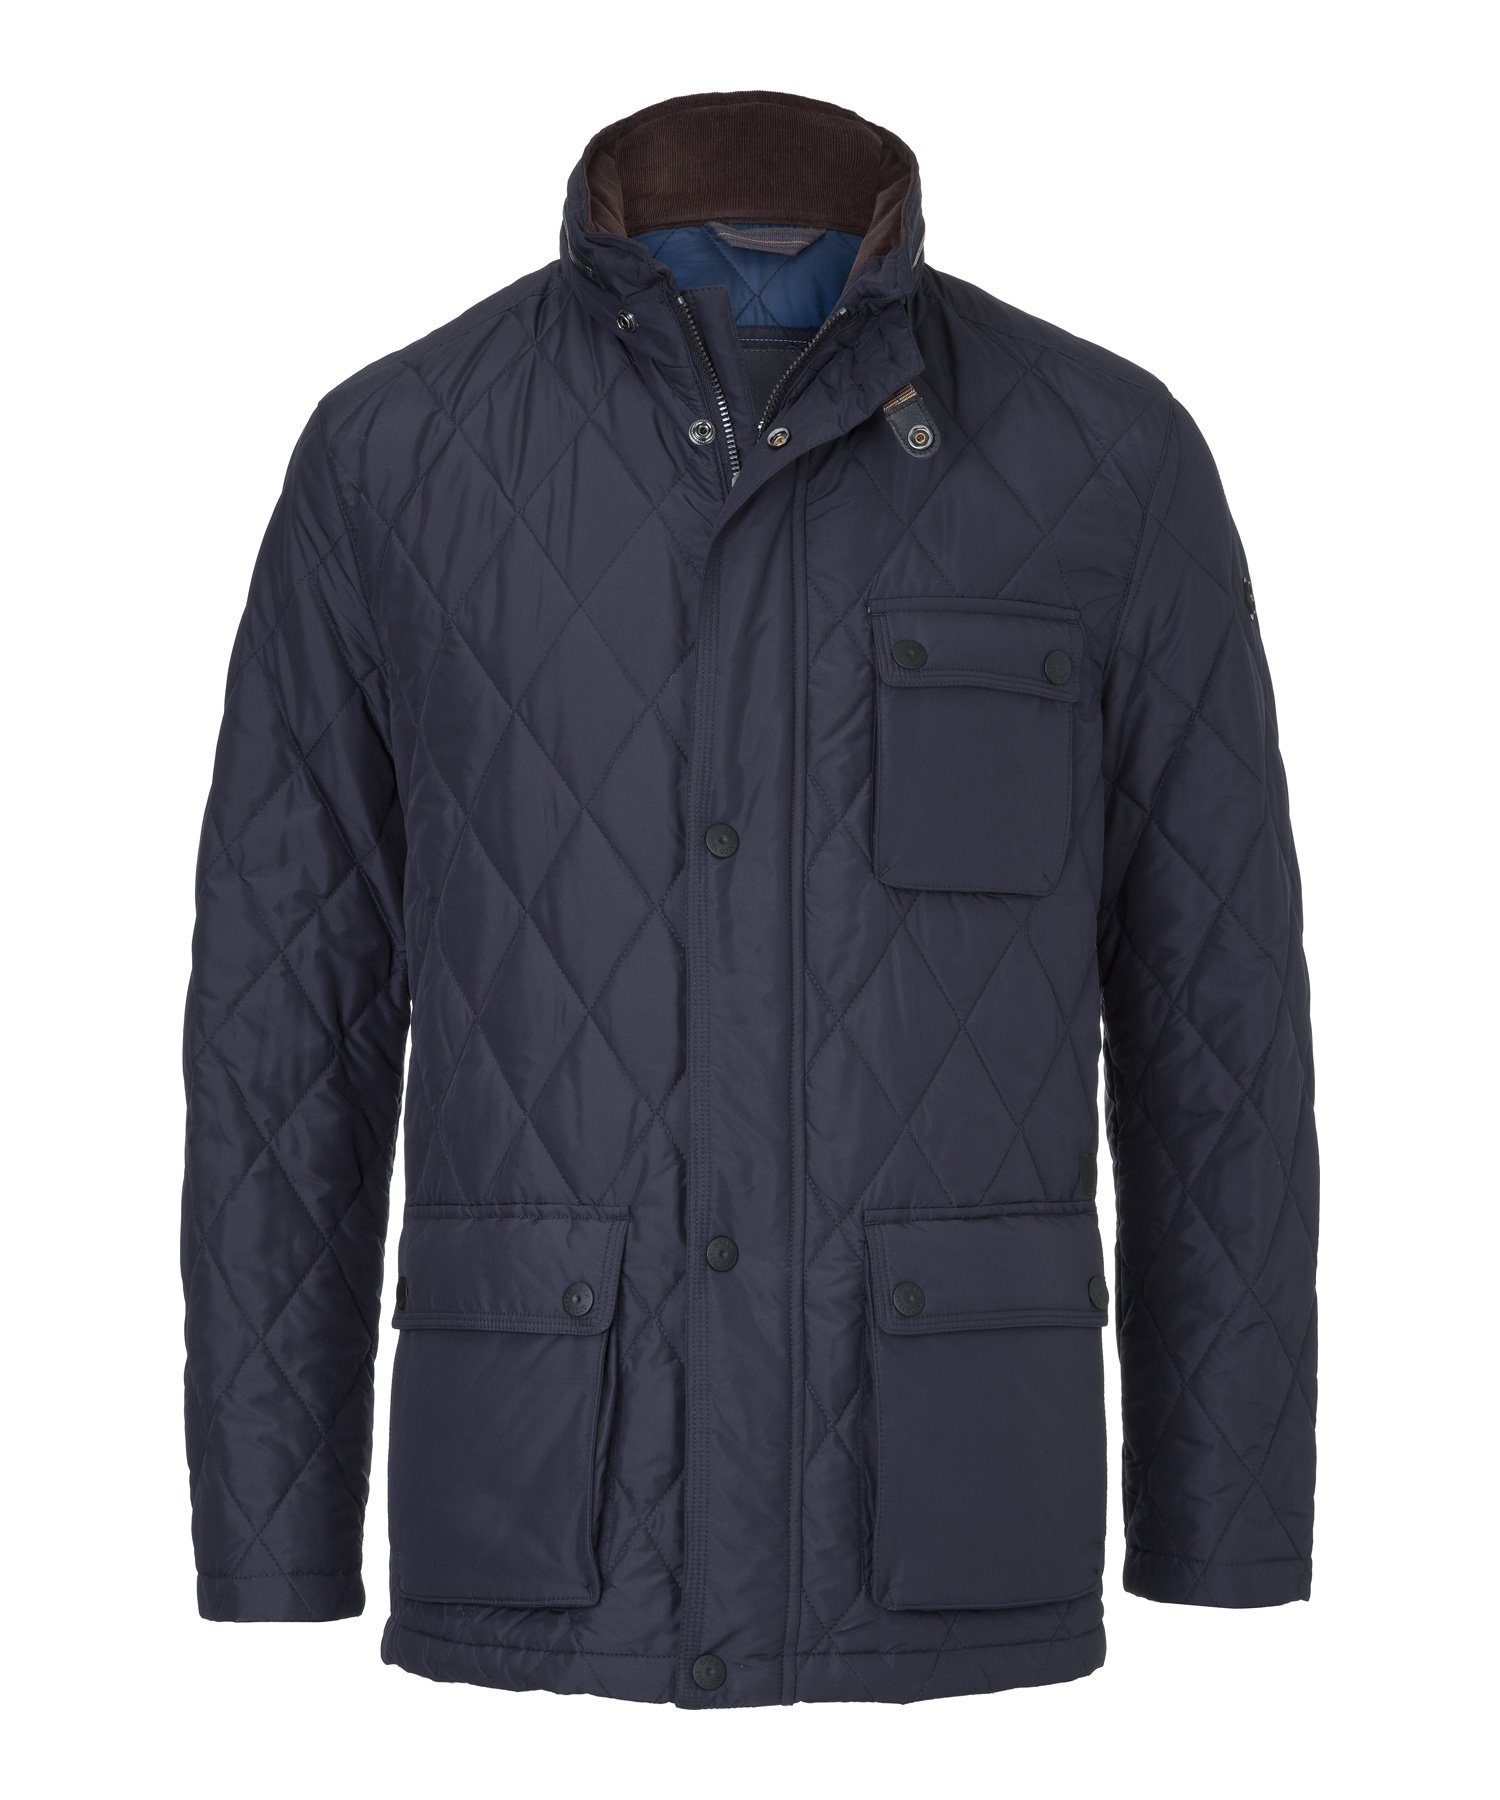 BRAX Milano - Herrenjacke Outdoor »Klassische Steppjacke im legeren Look«